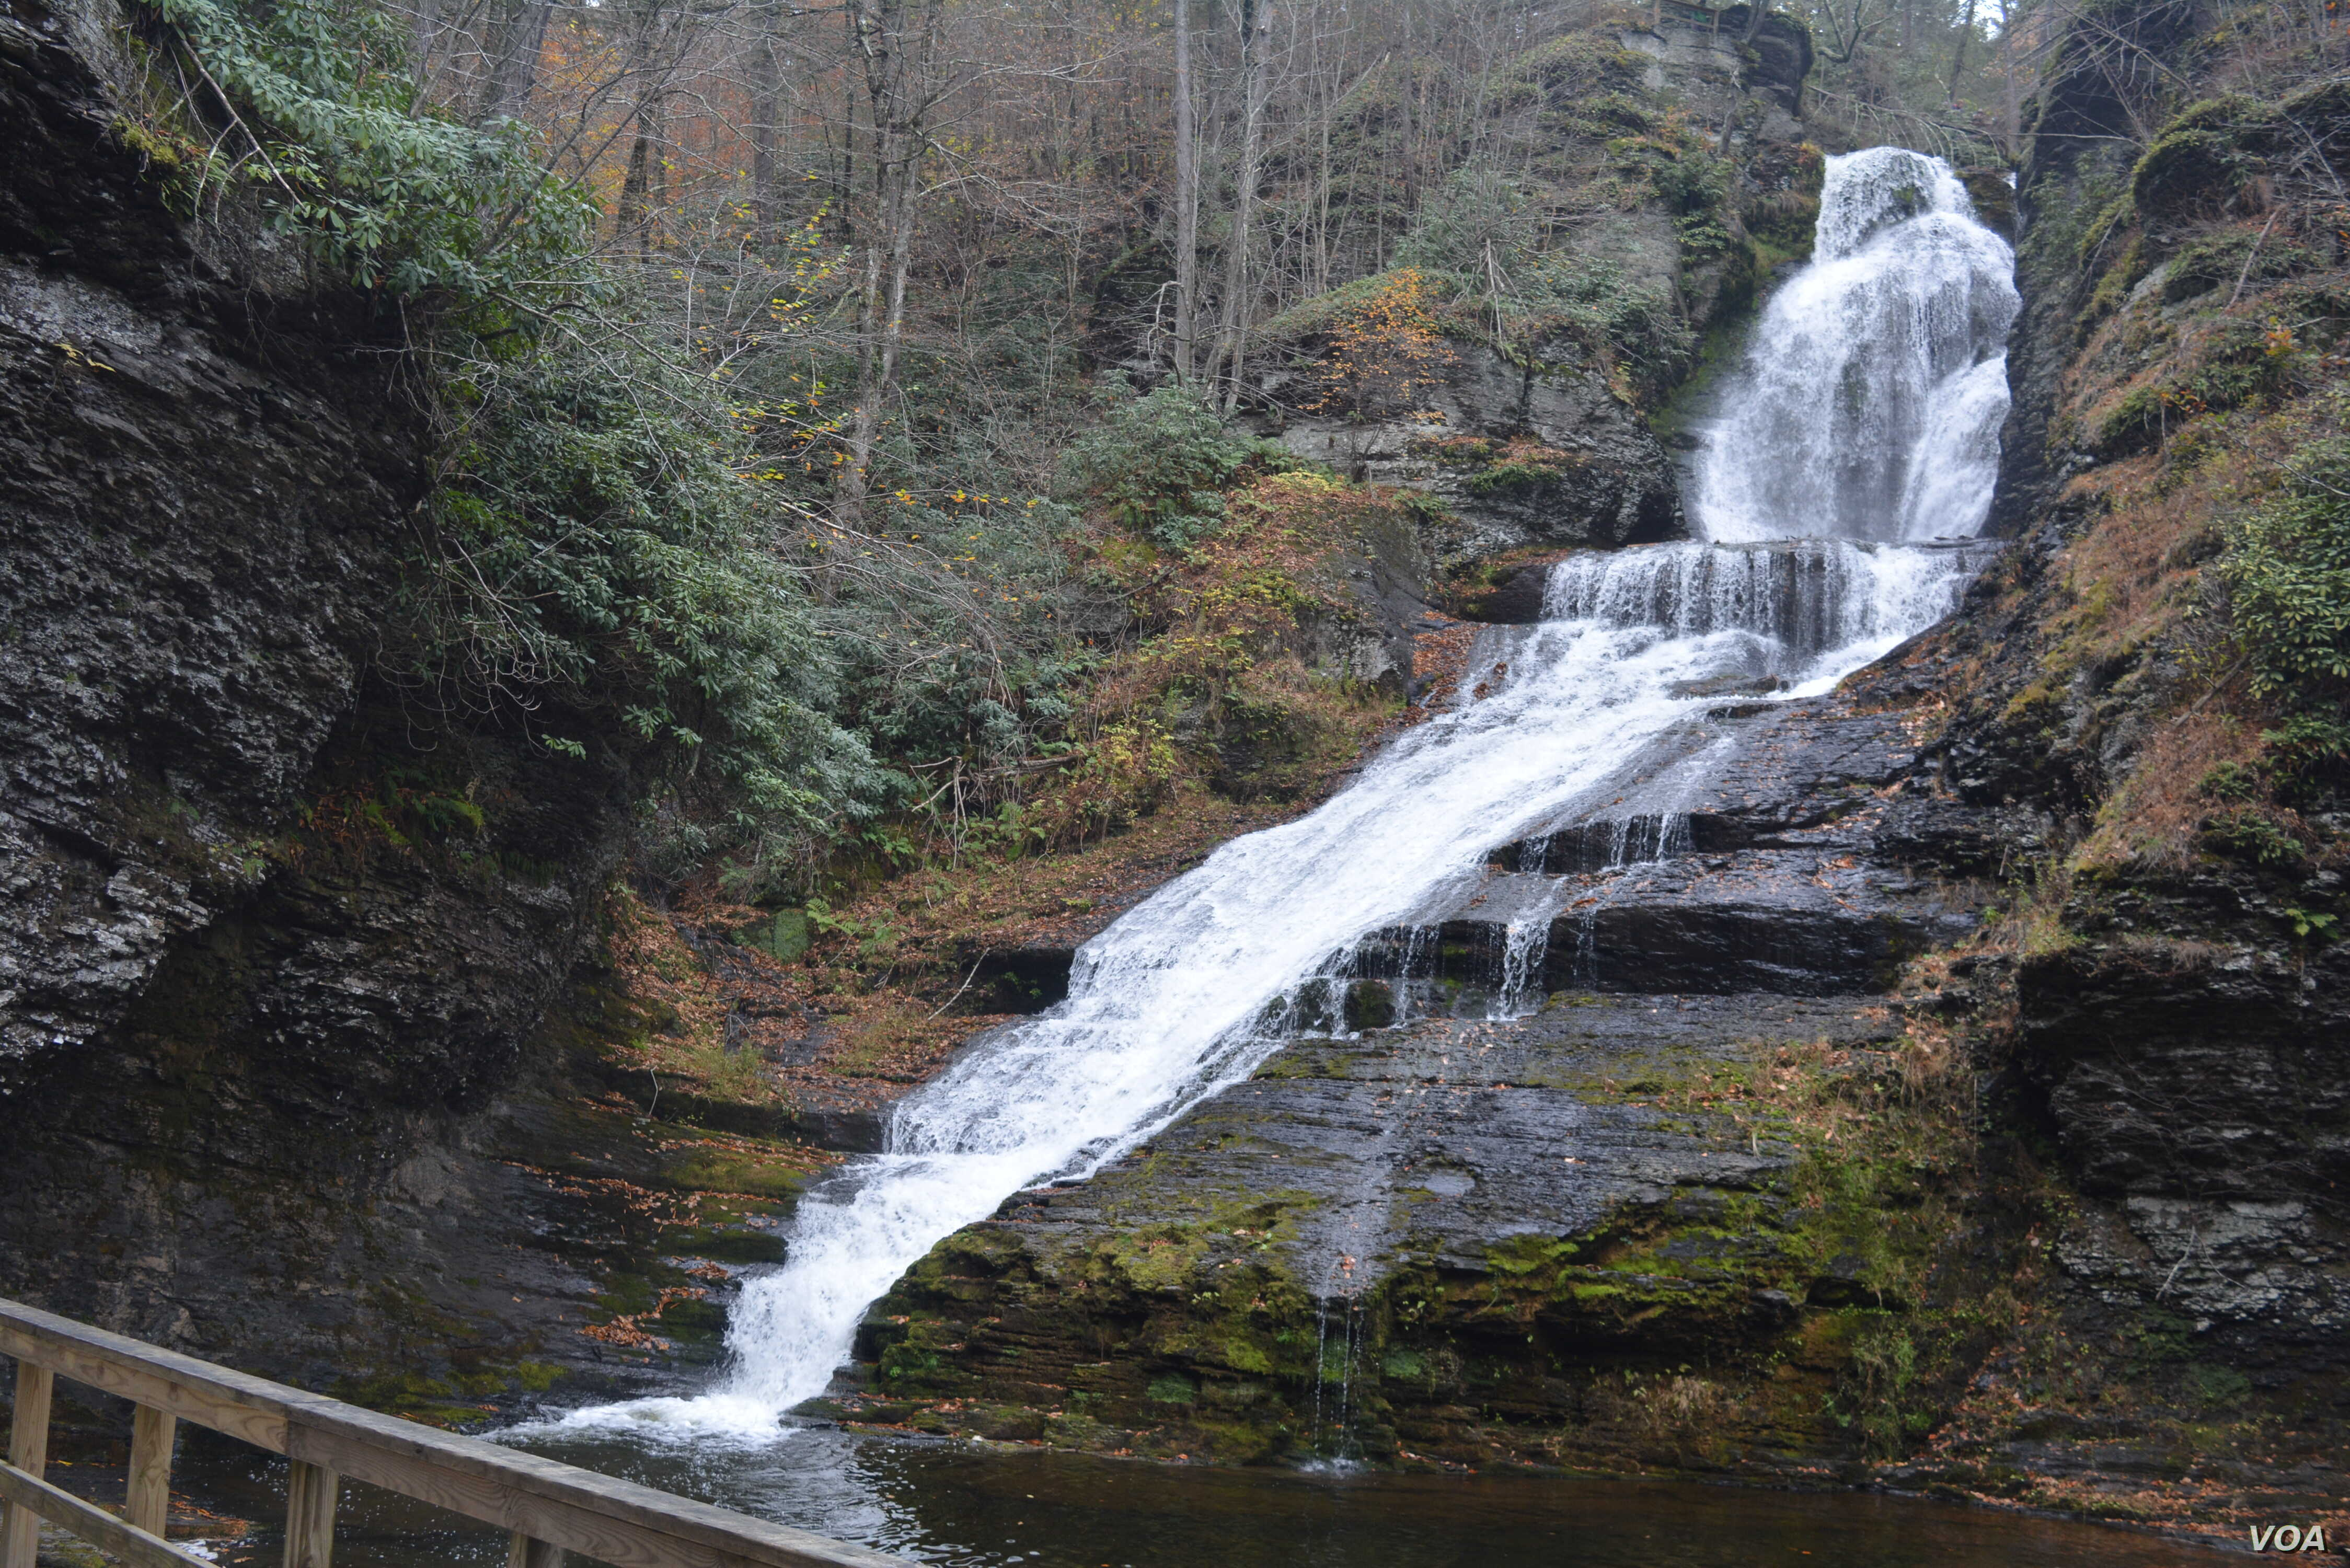 Waterfalls such as the popular Dingmans Falls plunge from the higher elevations, providing cool oases during the summer and spectacular ice walls in the winter at Delaware Water Gap National Recreation Area in Pennsylvania.